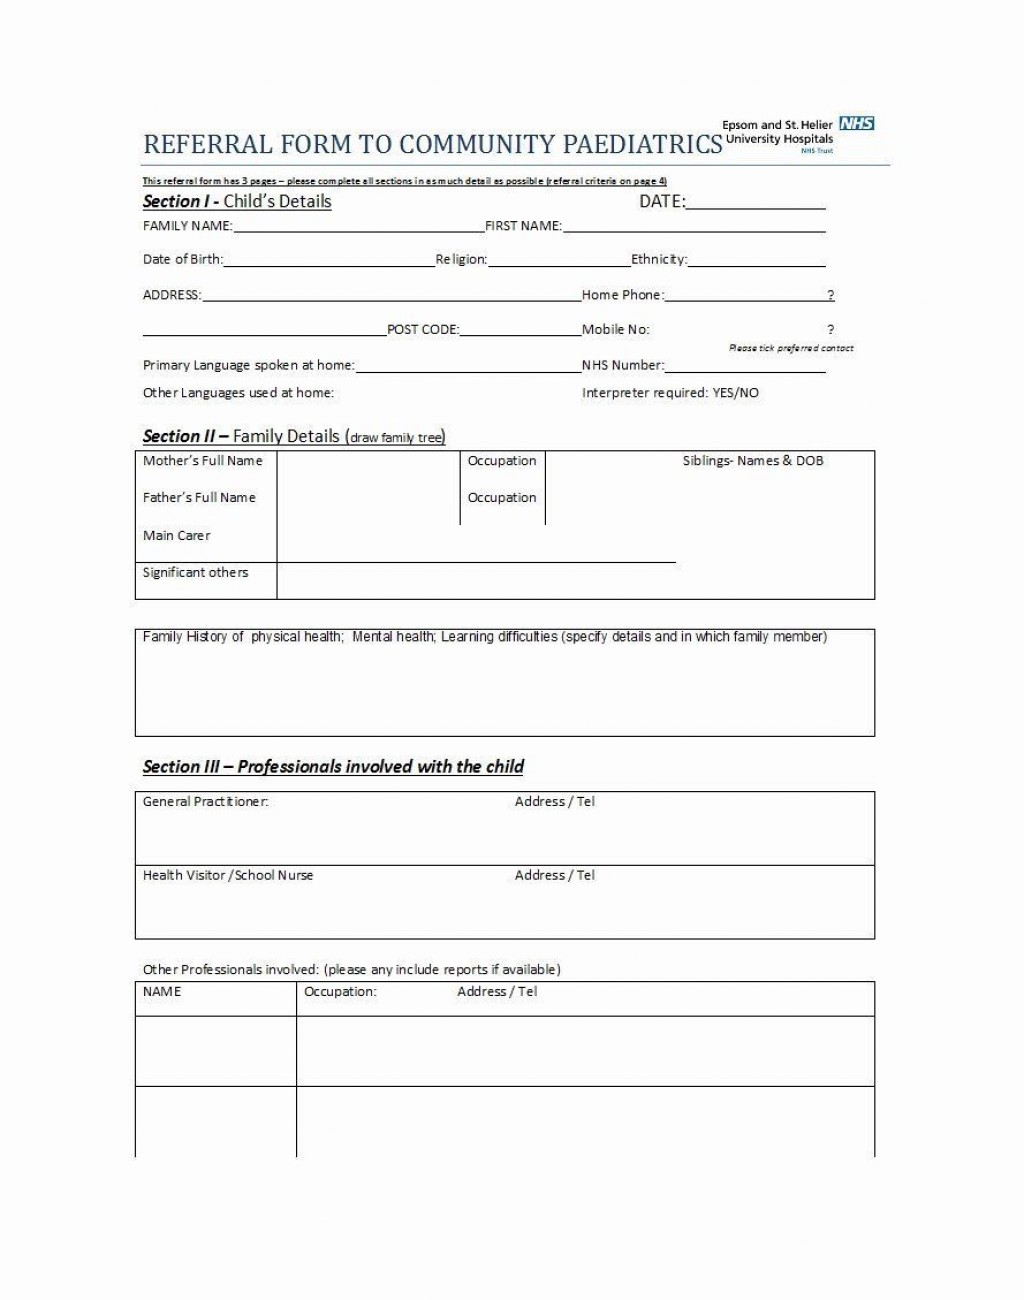 002 Incredible Medical Referral Form Template Highest Quality  Dental Patient Doctor Free PhysicianLarge